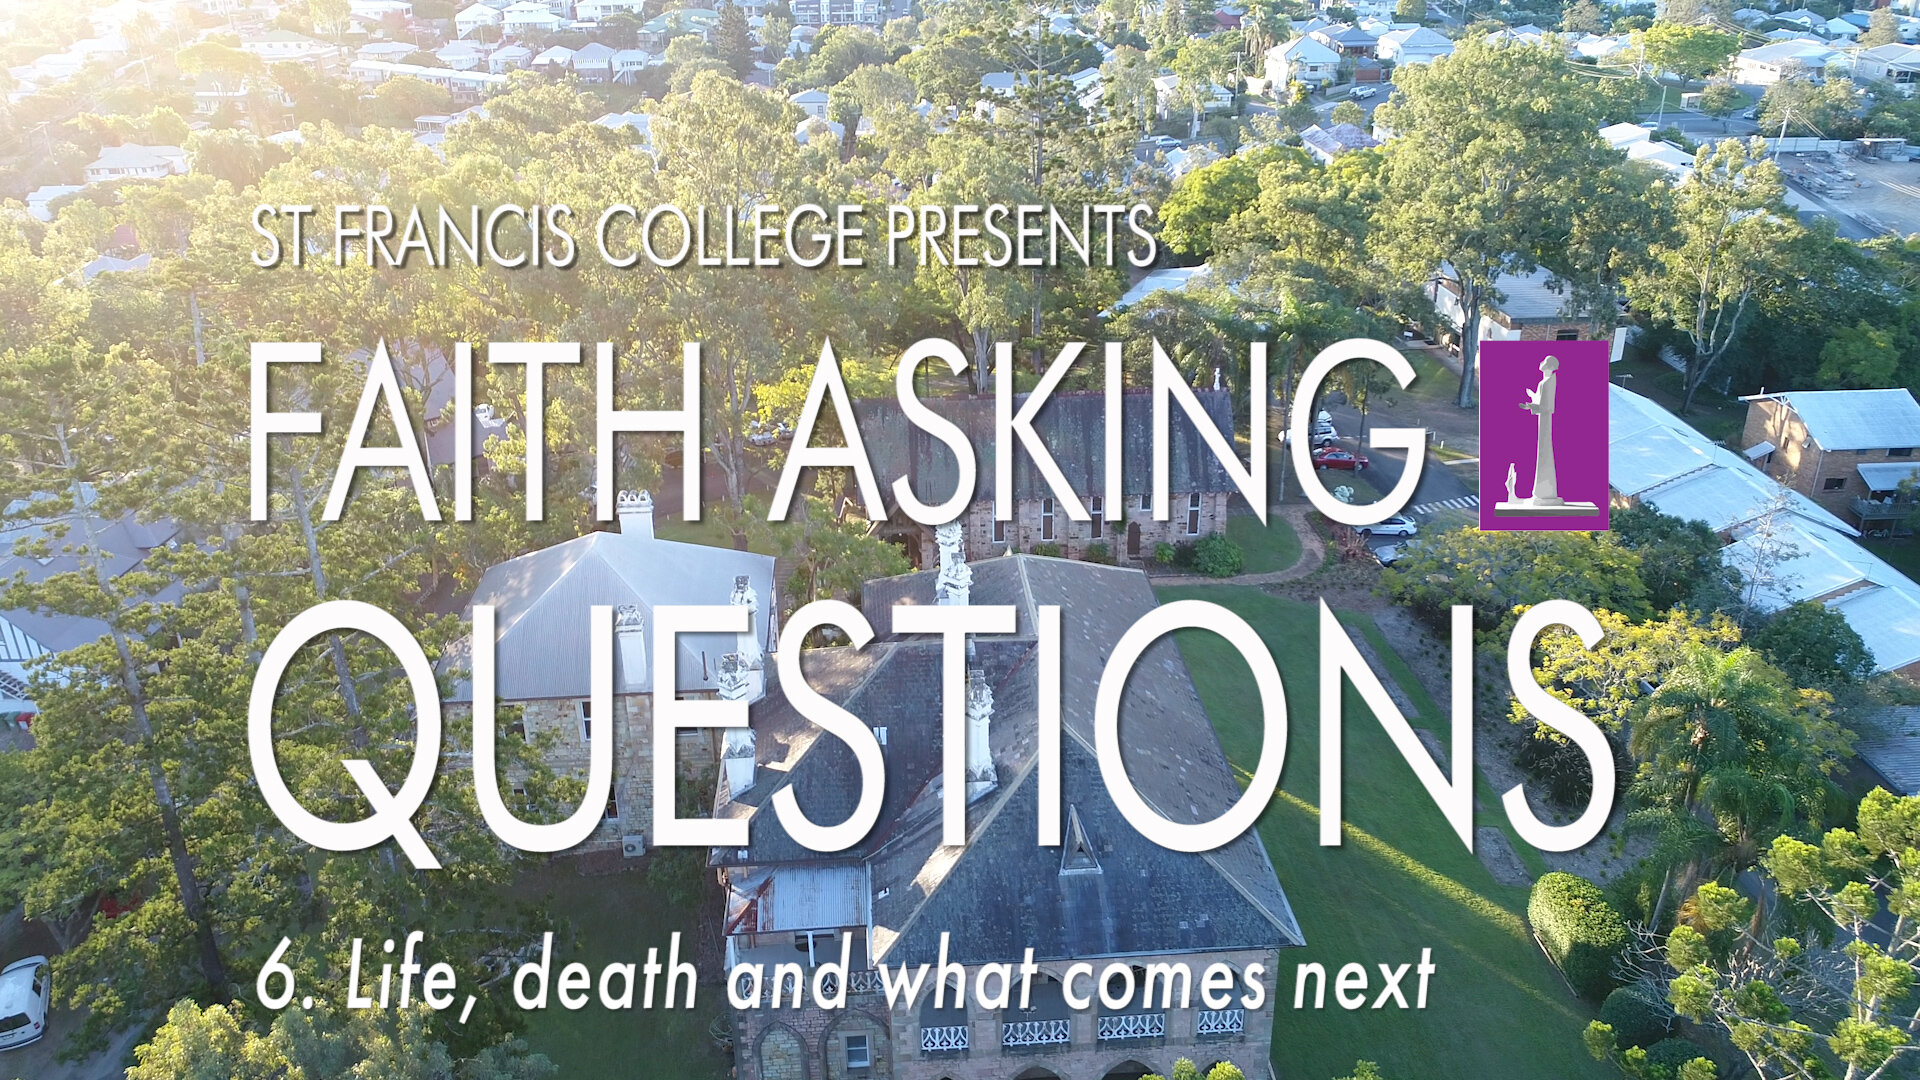 6. Life, death and what comes next